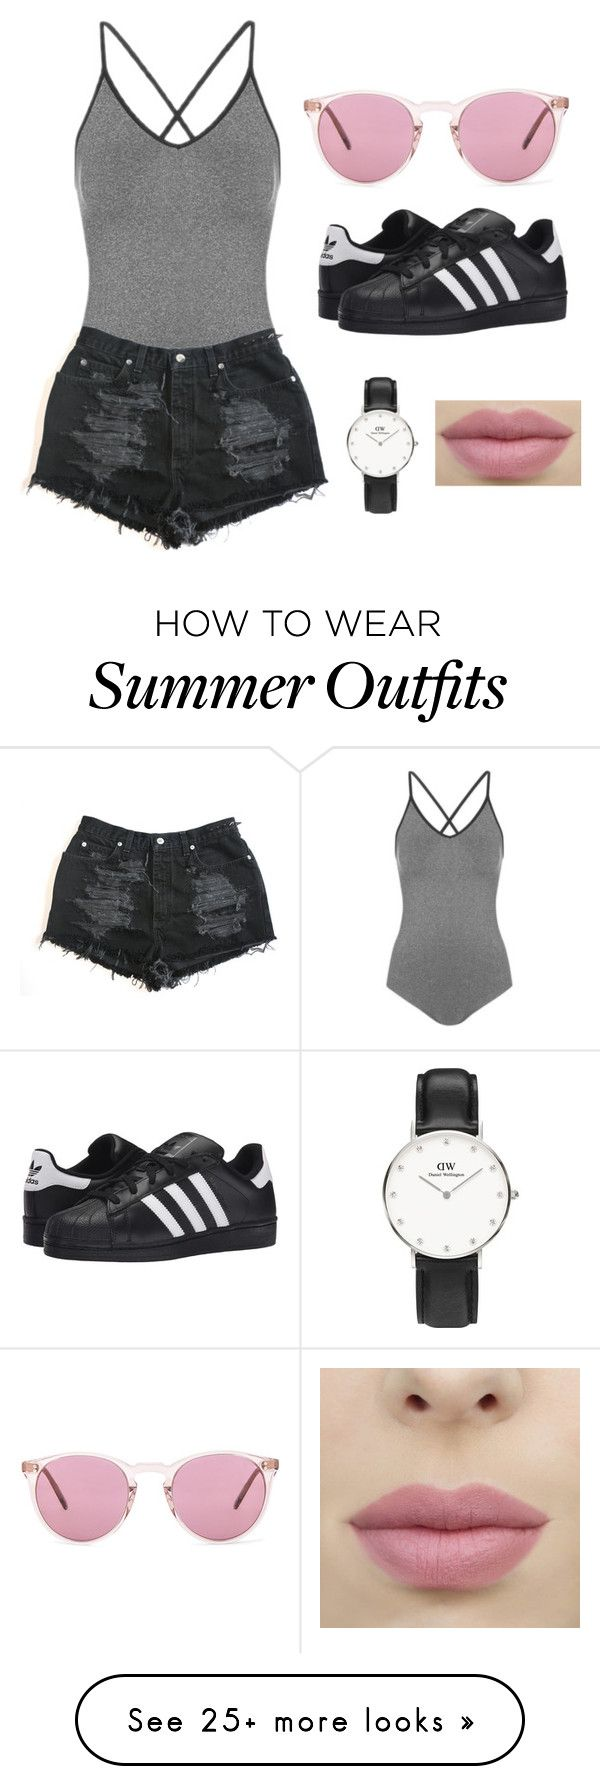 """Summer outfit"" by mnpe on Polyvore featuring Topshop, Daniel Wellington, adidas Originals and Oliver Peoples"